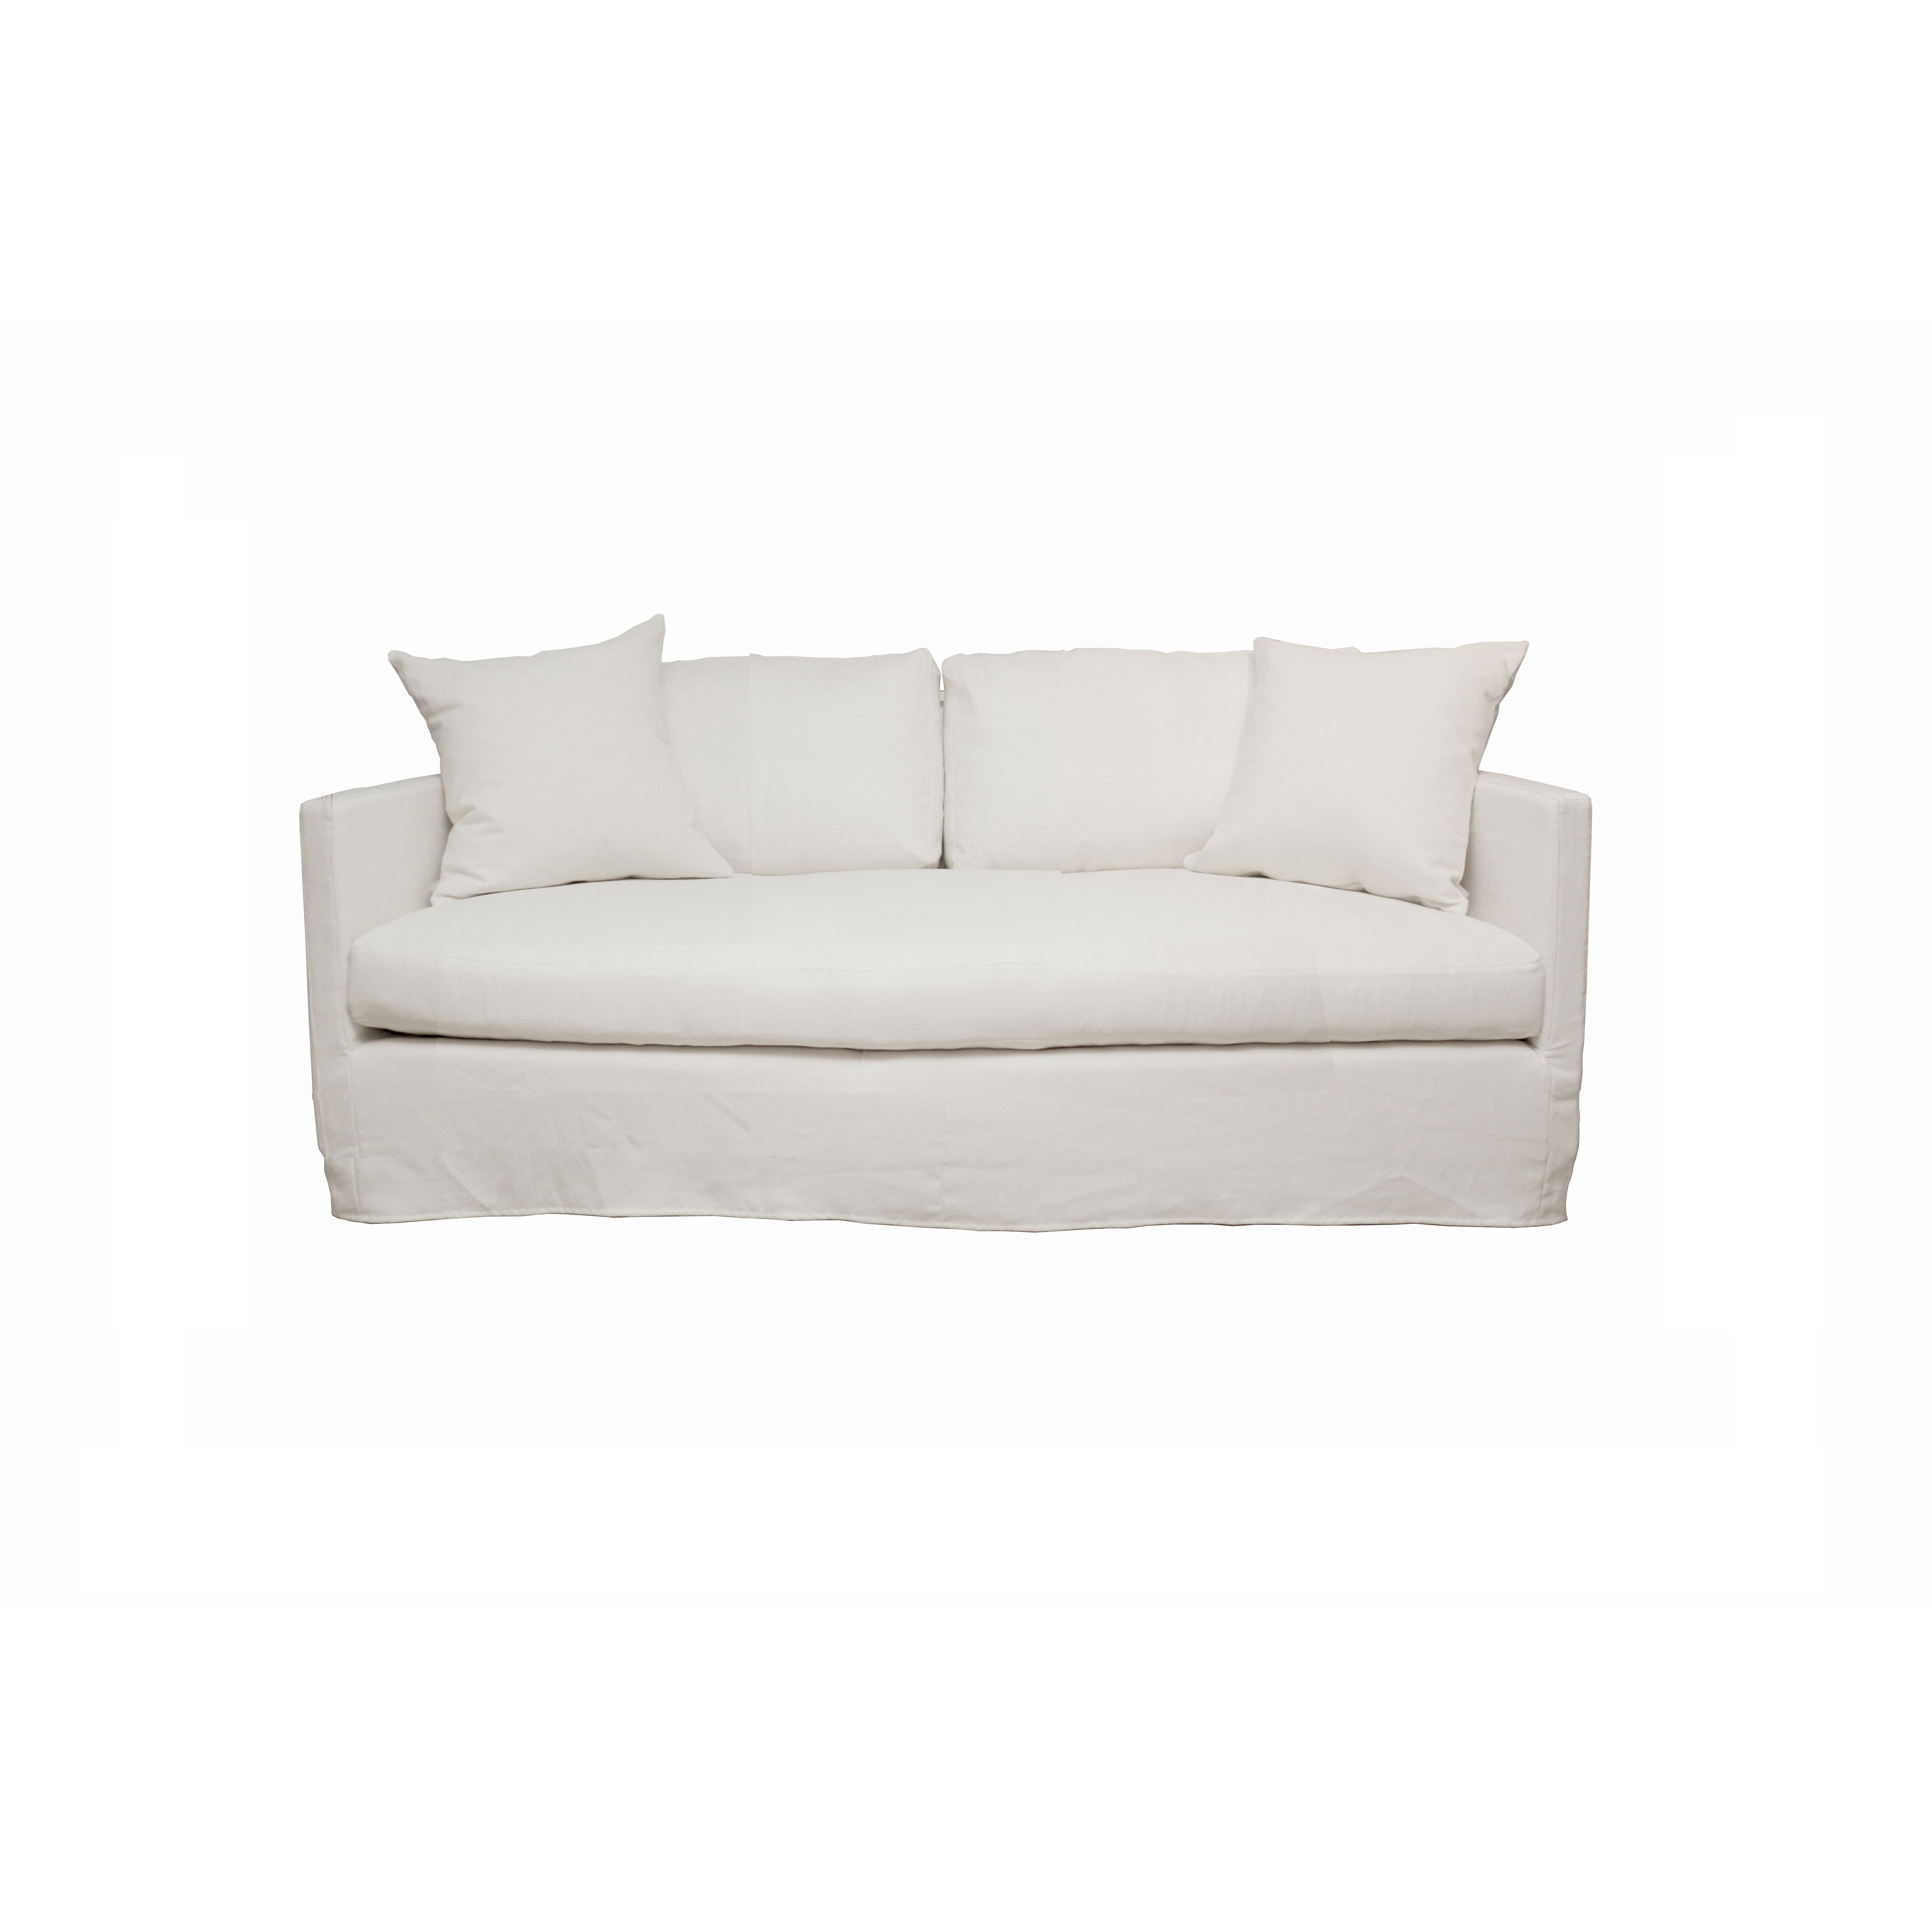 Somerville casual soffa 2-sits - englesson.se